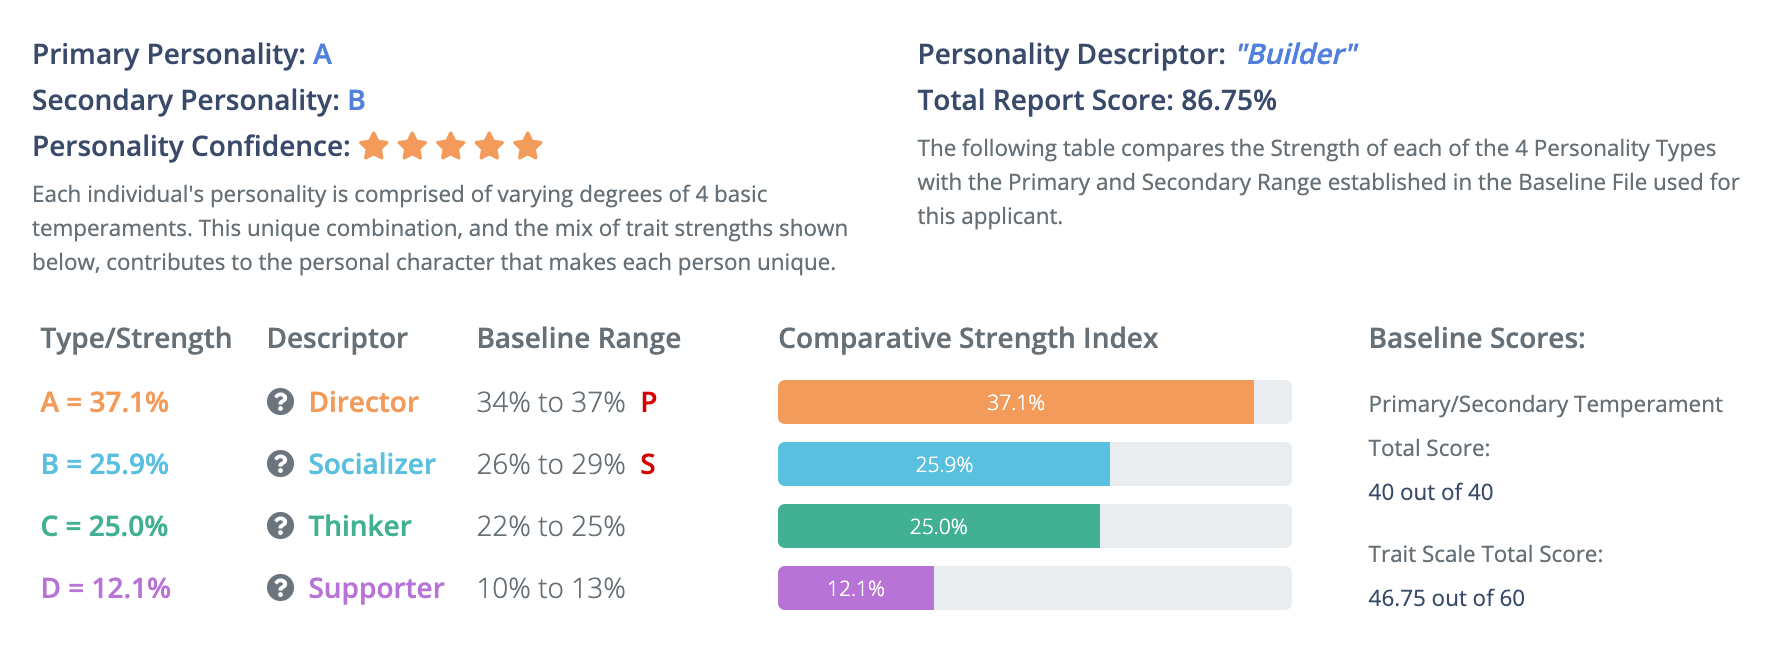 Sample Personality Profile Baseline Summary Report Top Section